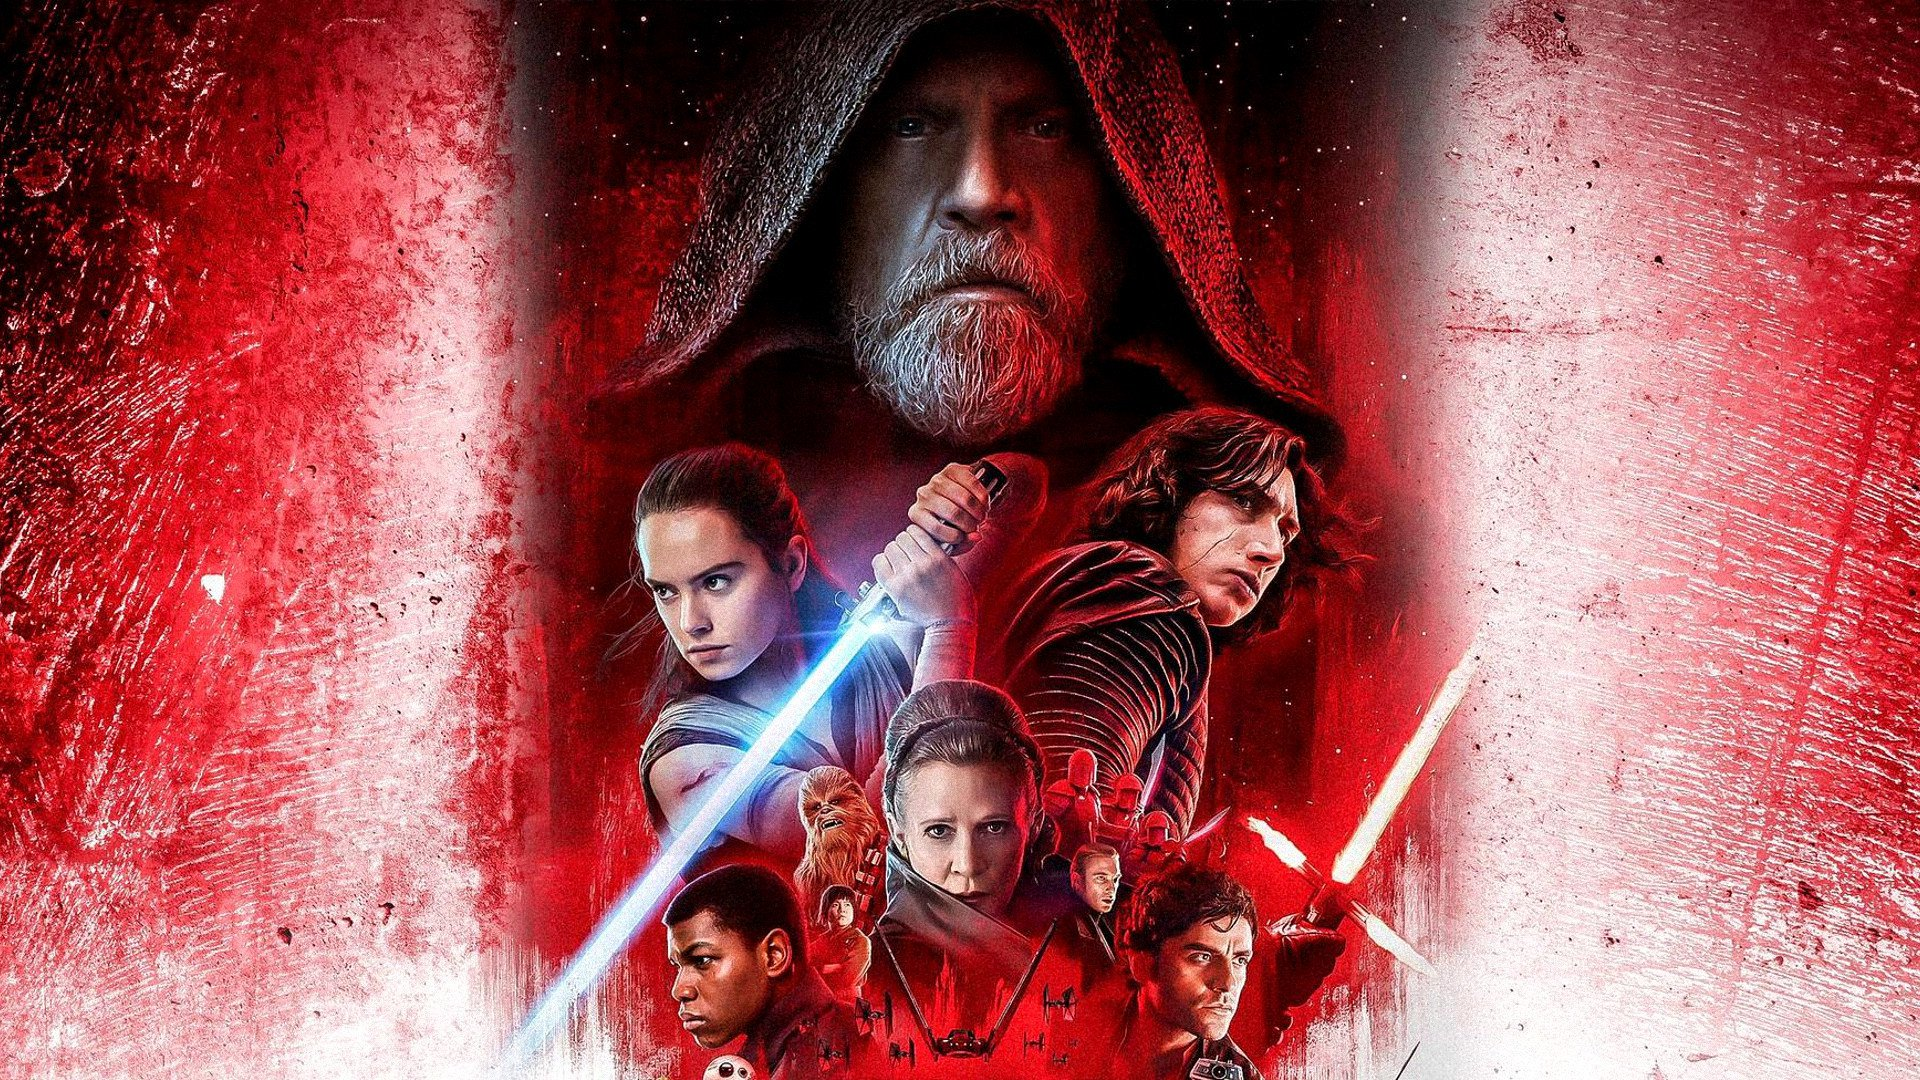 Star Wars Last Jedi Wallpaper 1920x1080 1210150 Wallpaperup